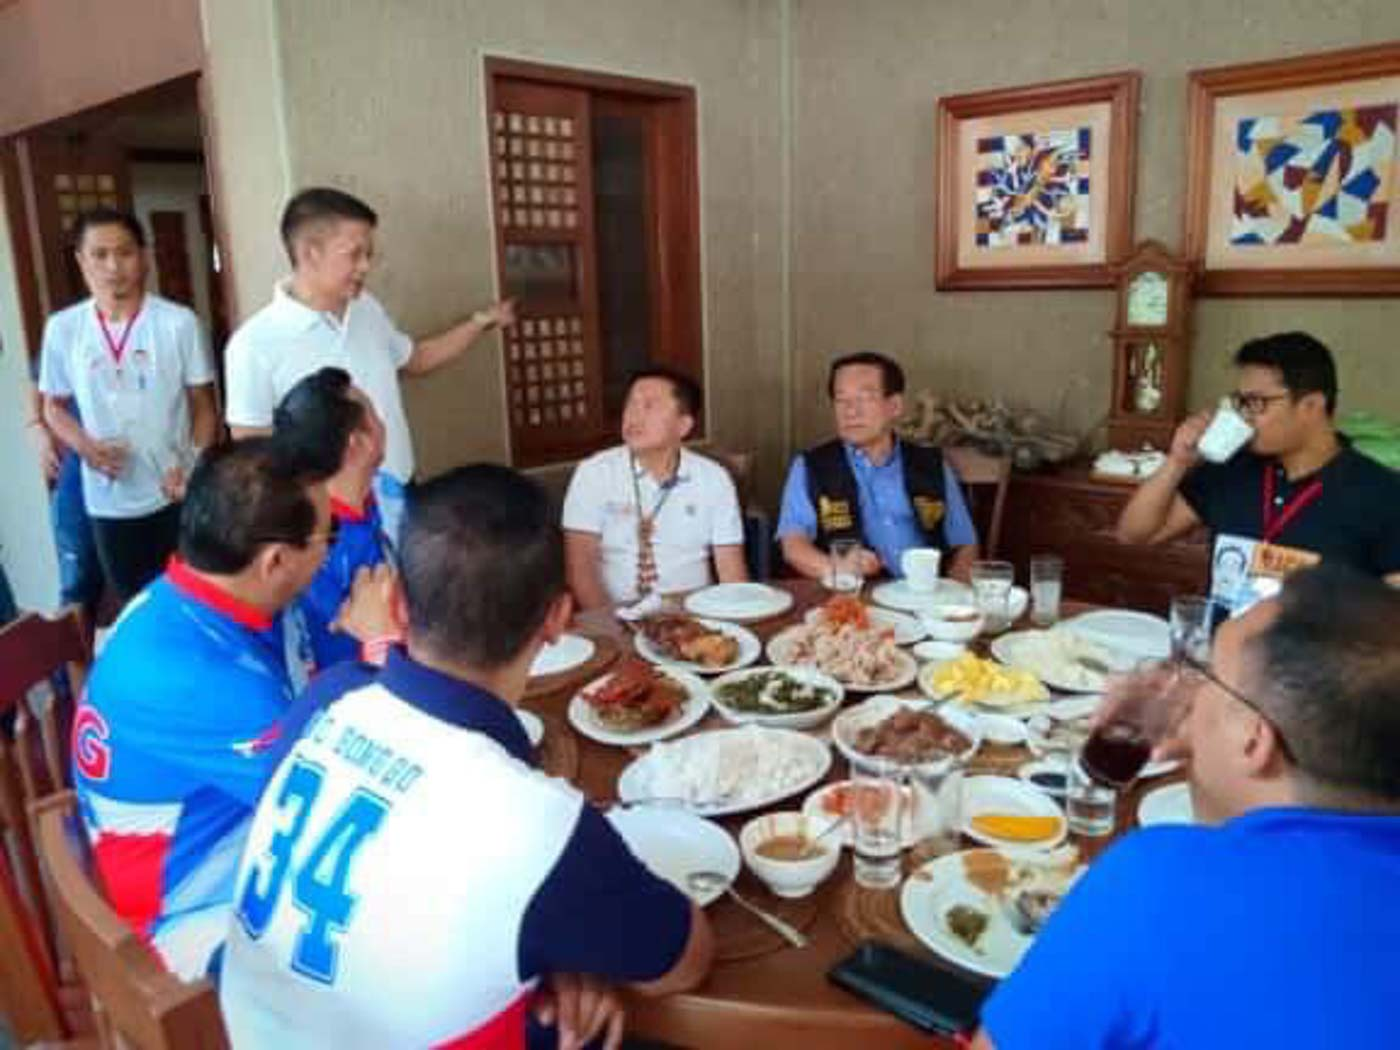 A MEAL. Senator Francis Escudero hosts a number of senatorial candidates, including Bong Go and Romy Macalintal in his residence in Sorsogon on March 31, 2019.  Photo by Rhaydz Barcia/Rappler